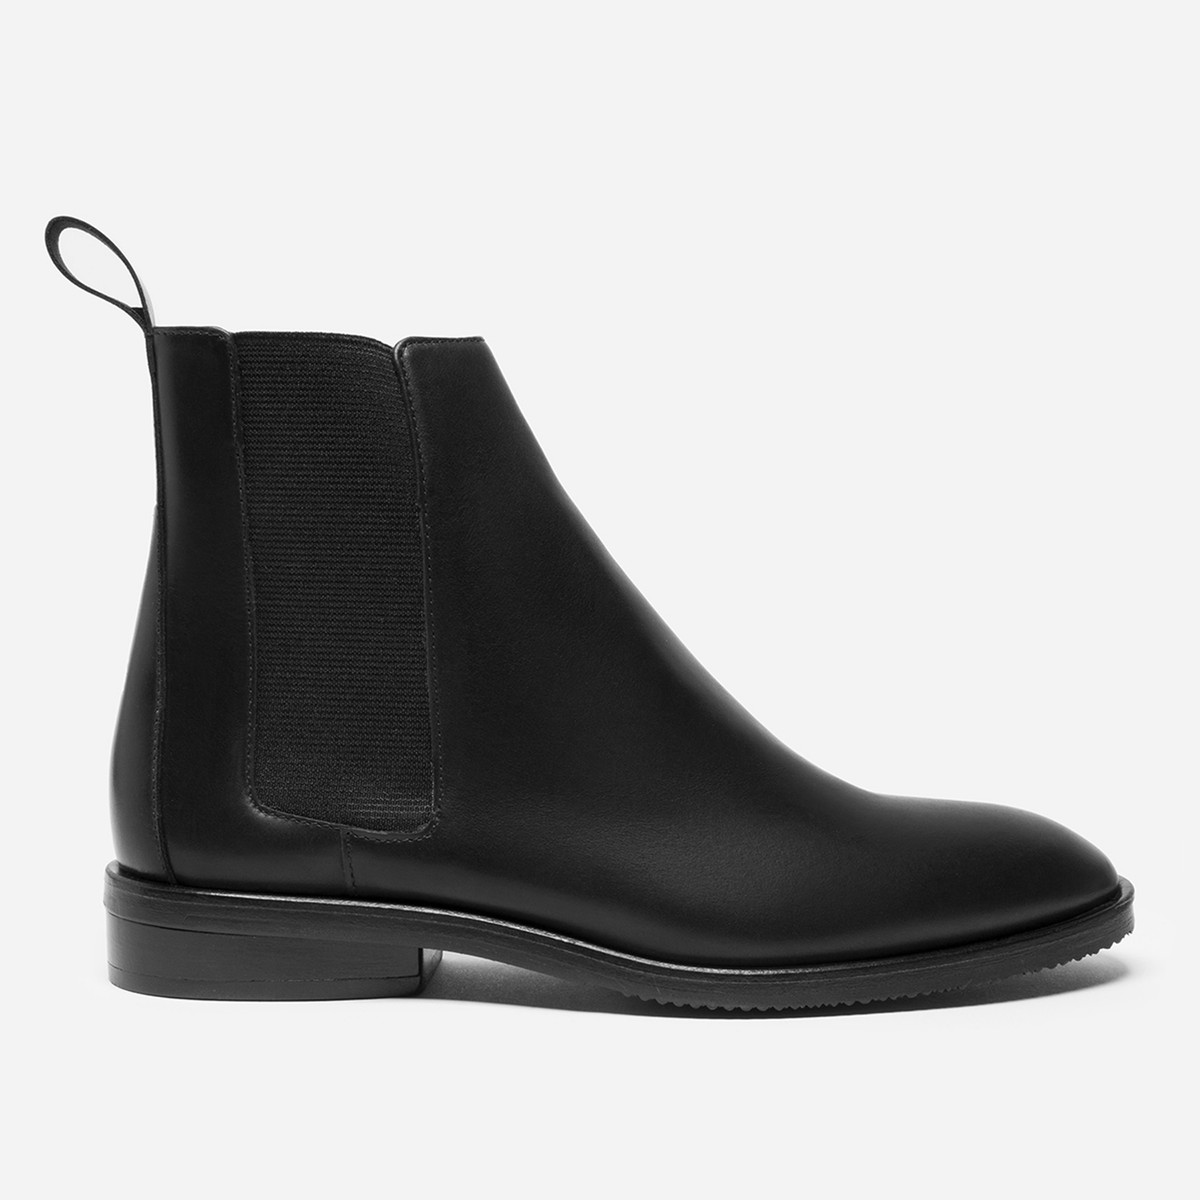 Fashion blogger Diana Pearl of Pearl Girl shares why I love Everlane with the Everlane Modern Chelsea Boot